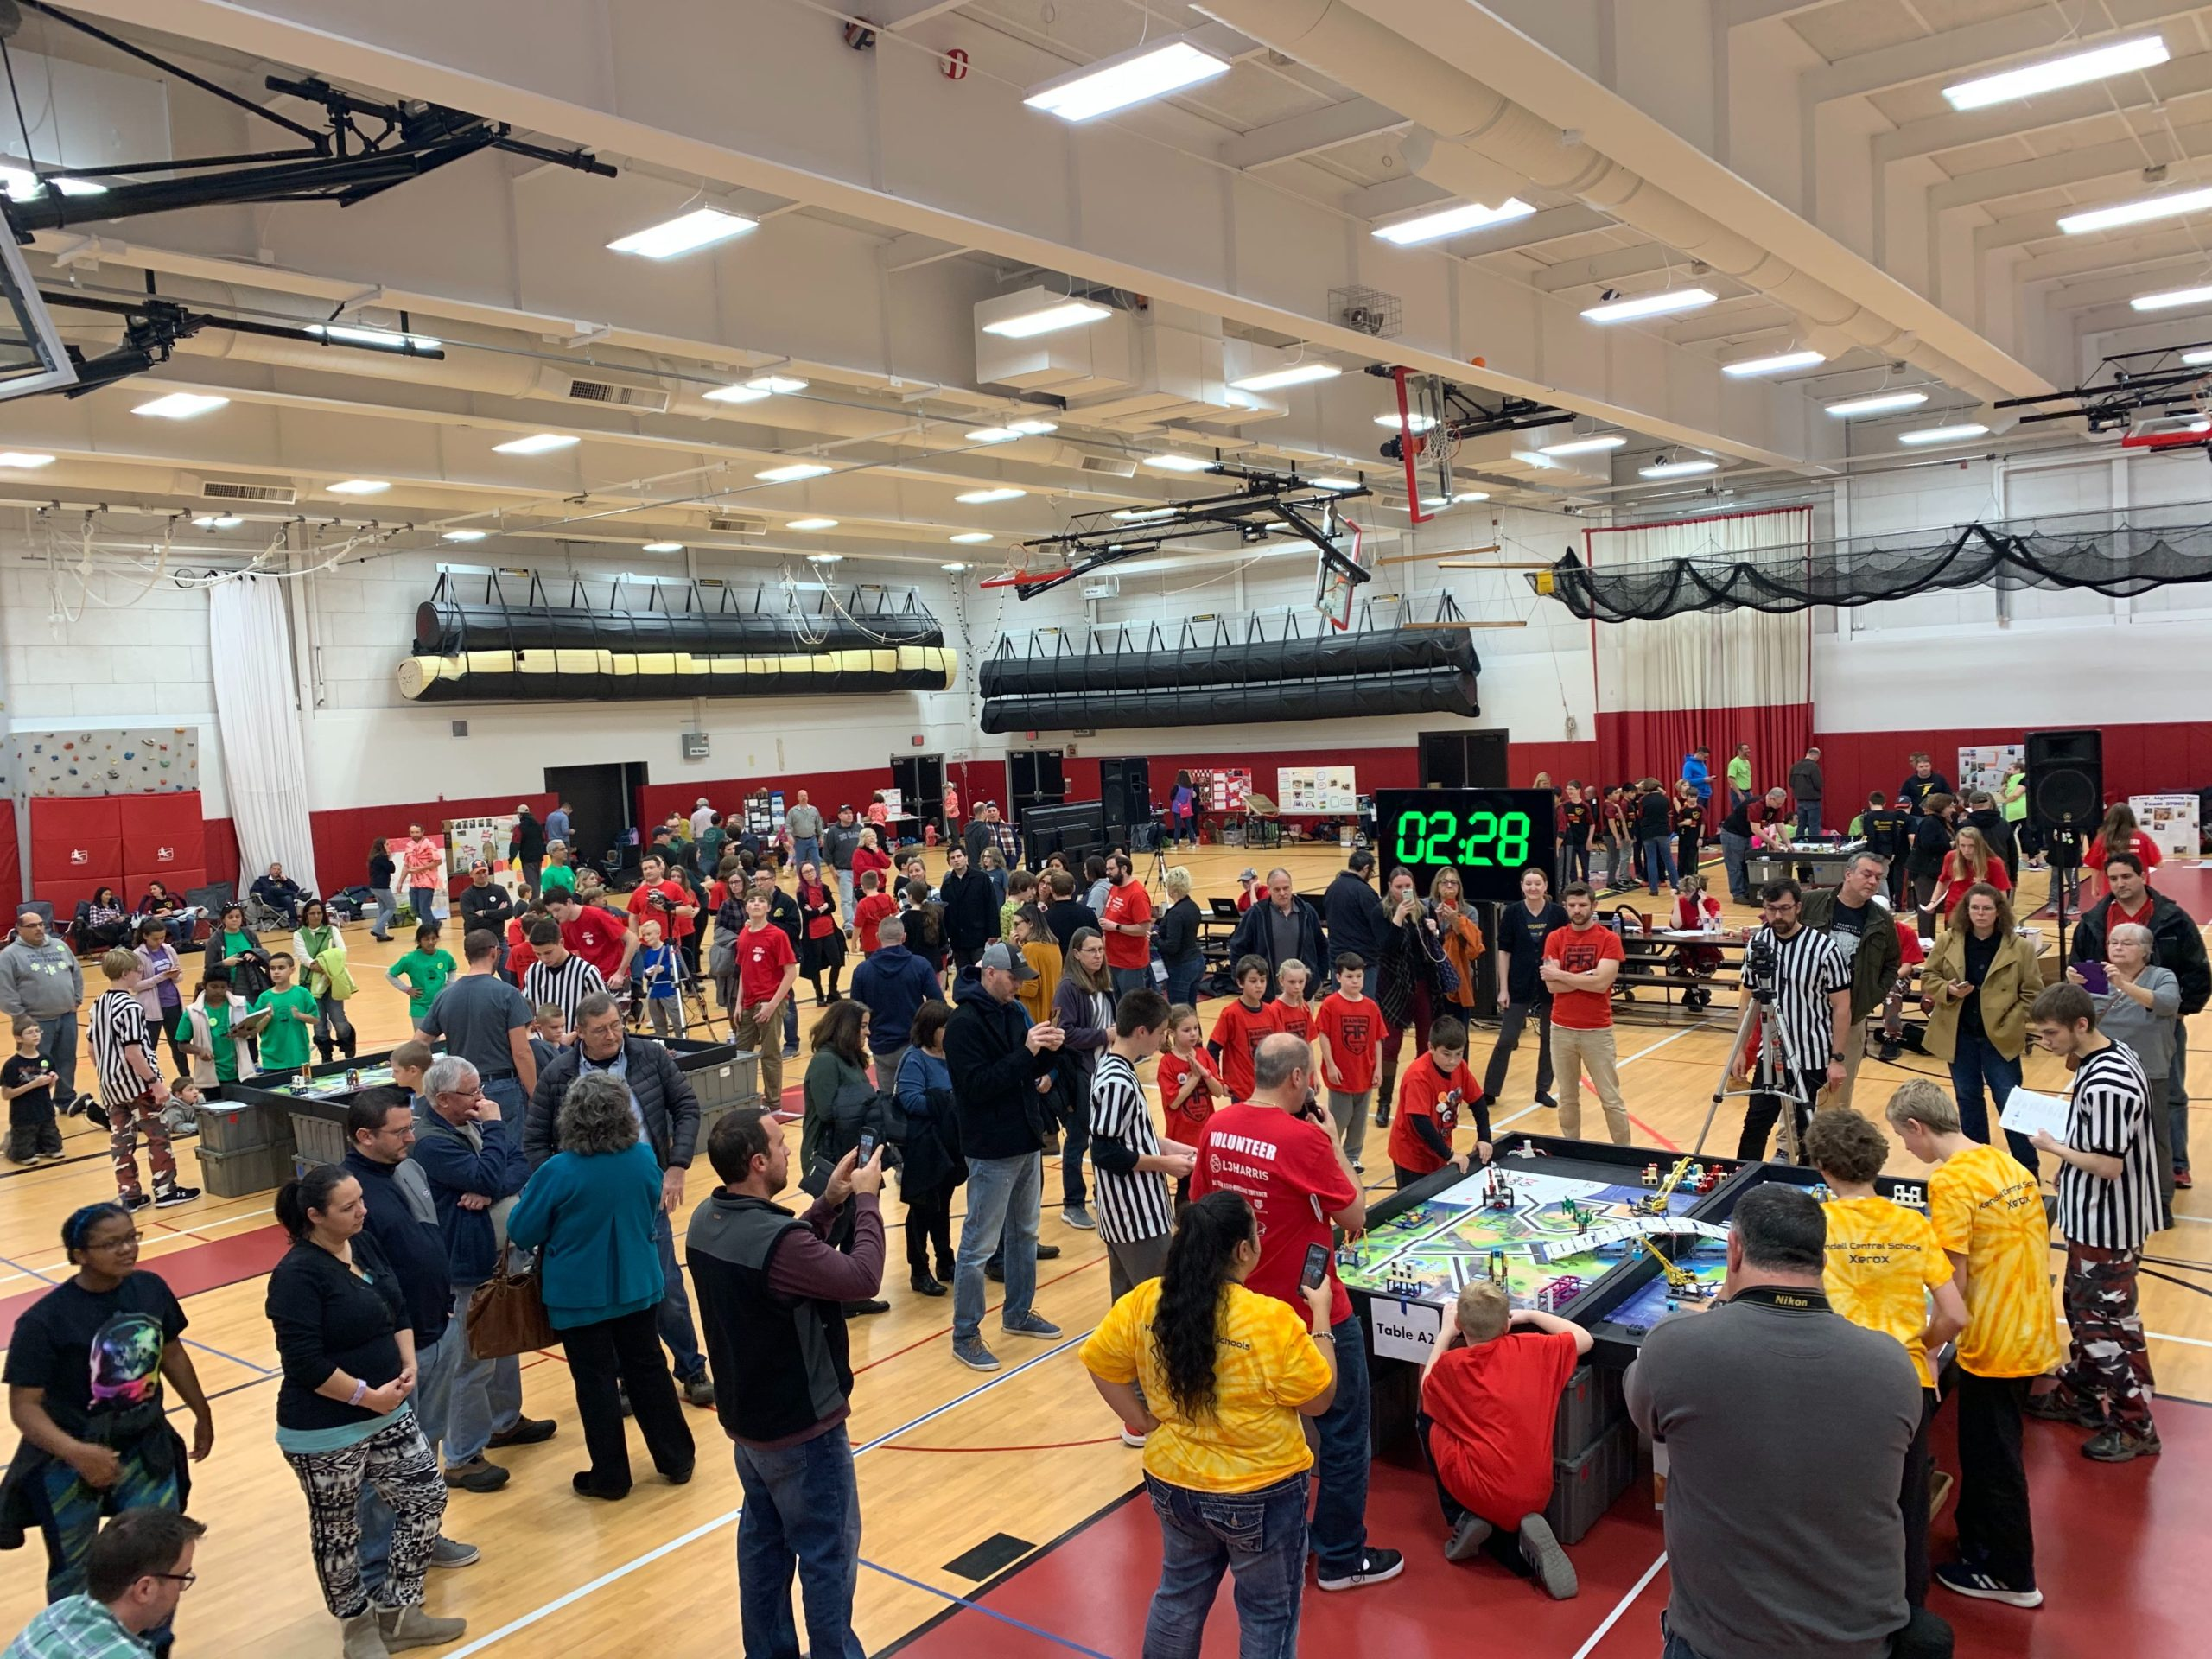 A gymnasium filled with FLL robotics teams, playing fields and spectators